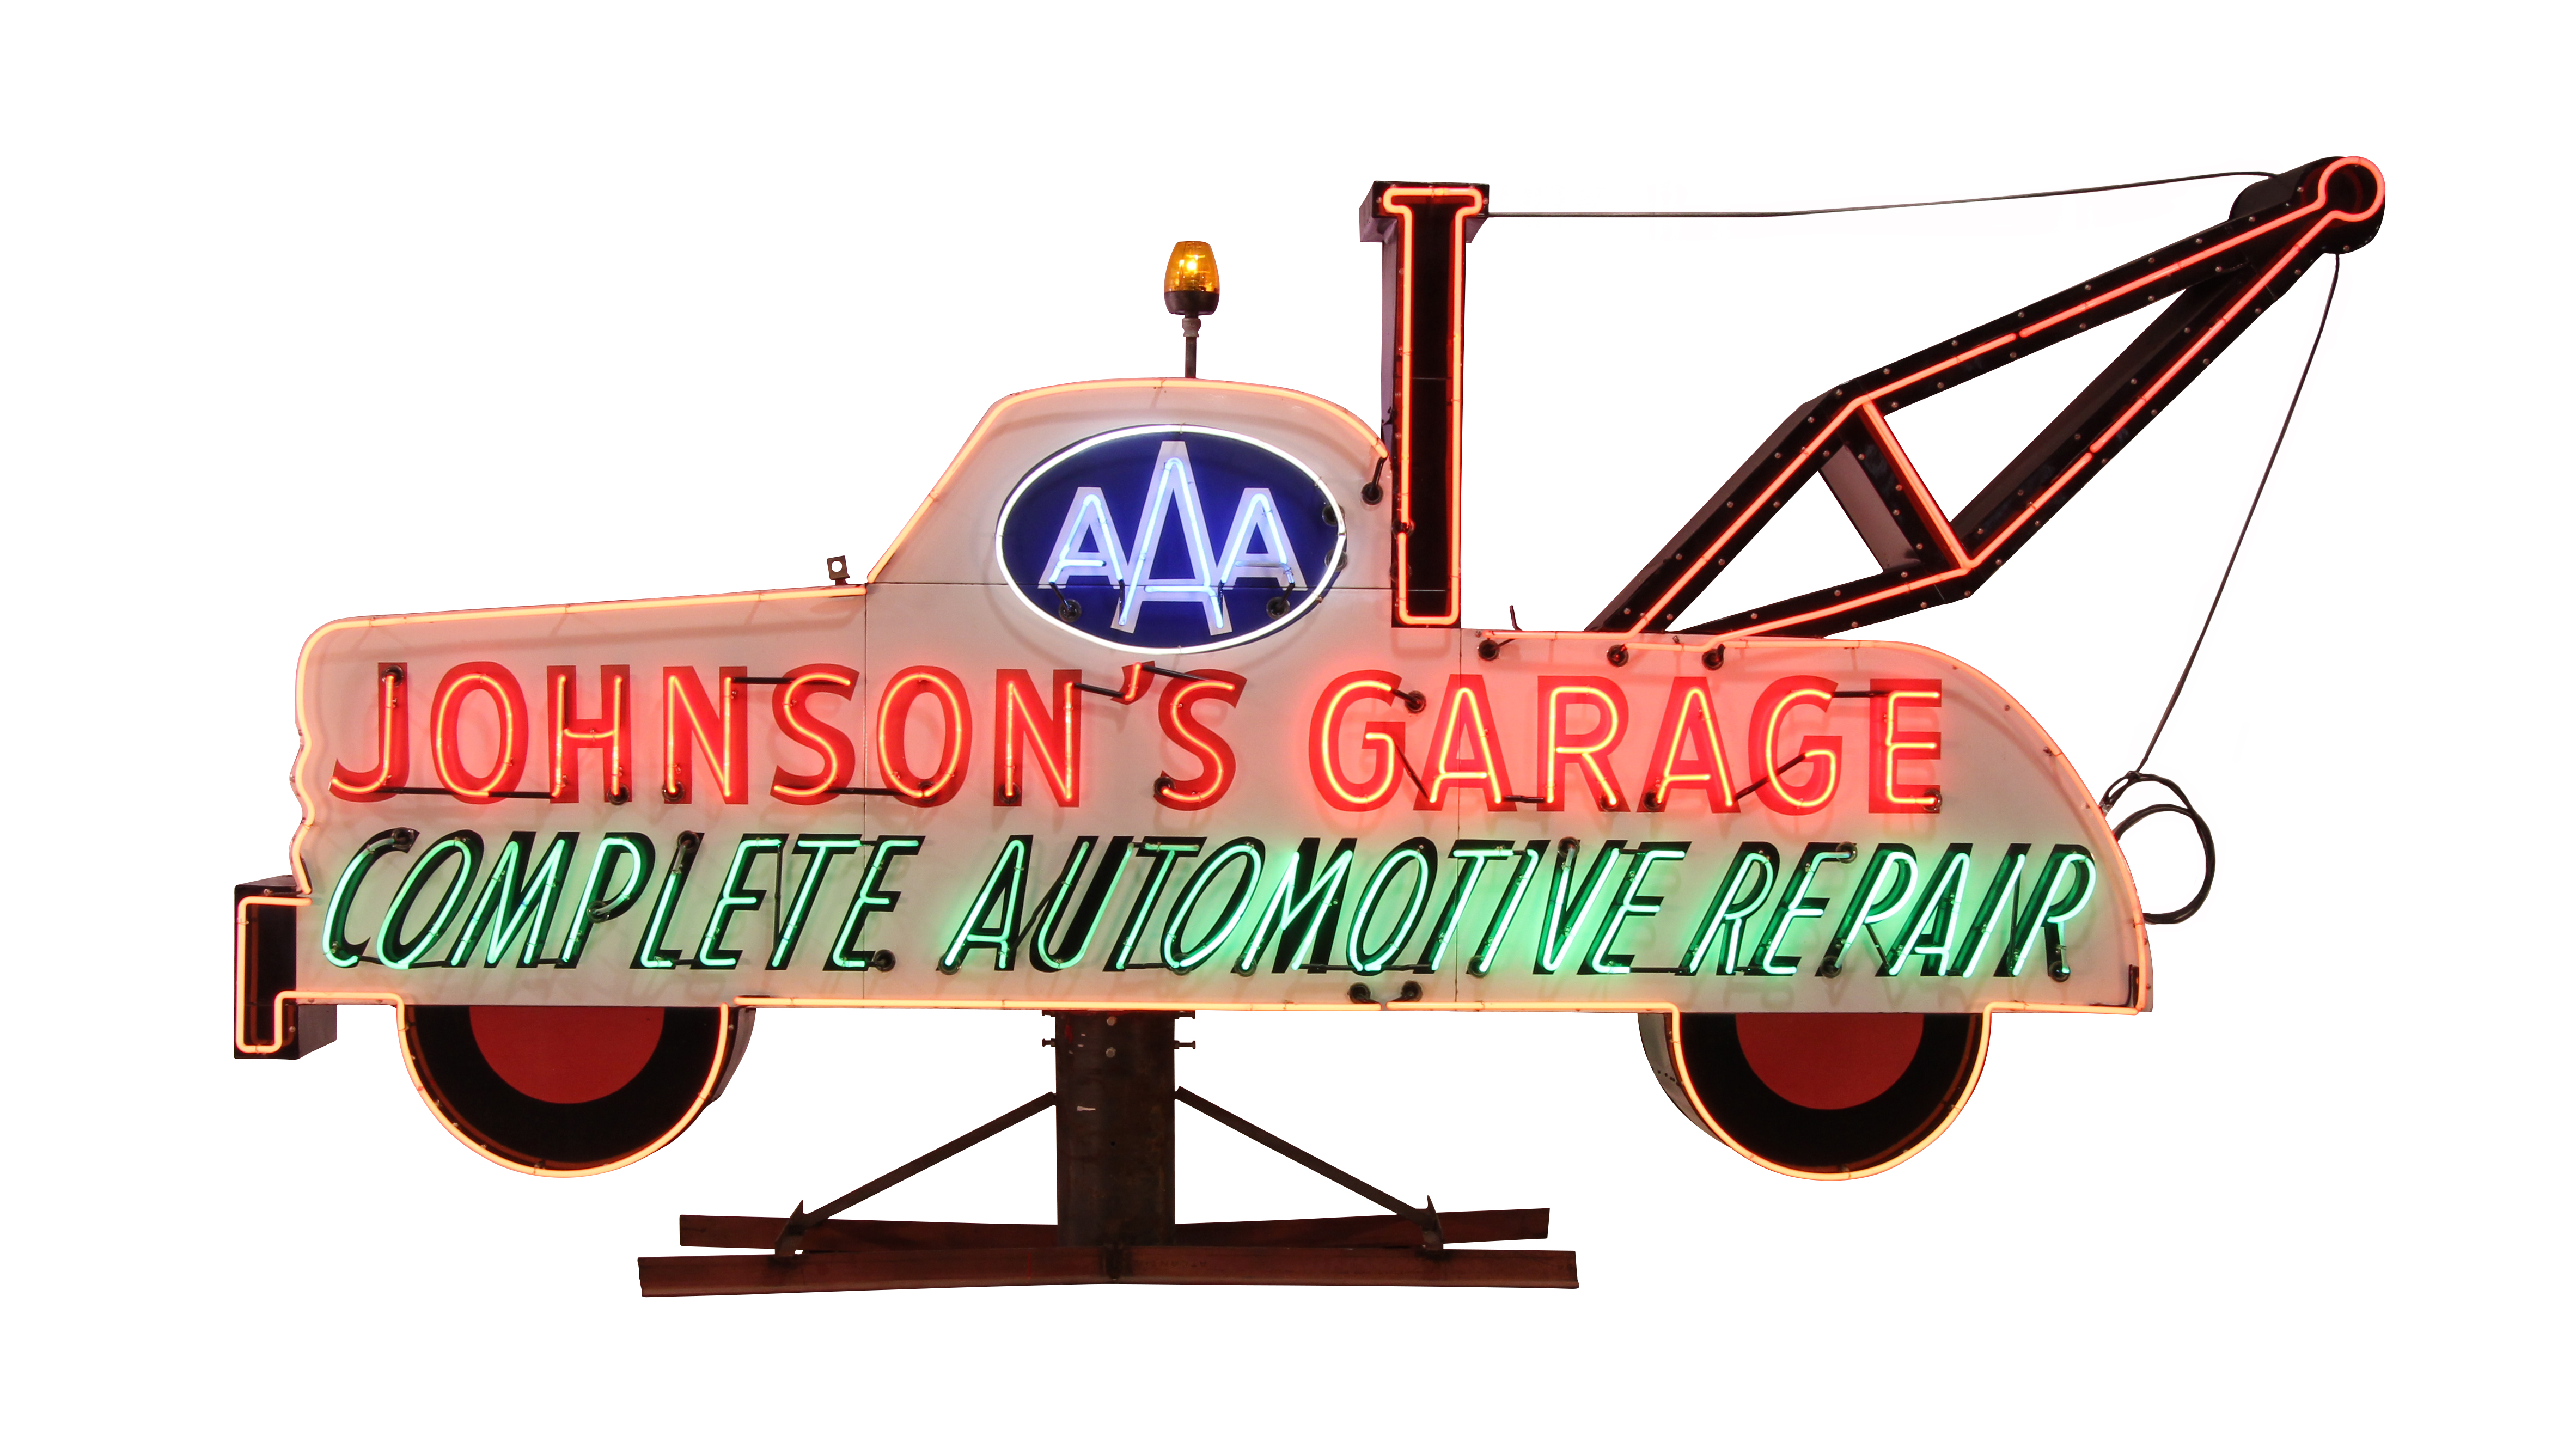 Vintage car signs clipart png free download Huge collection of vintage auto and other neon signs to be ... png free download